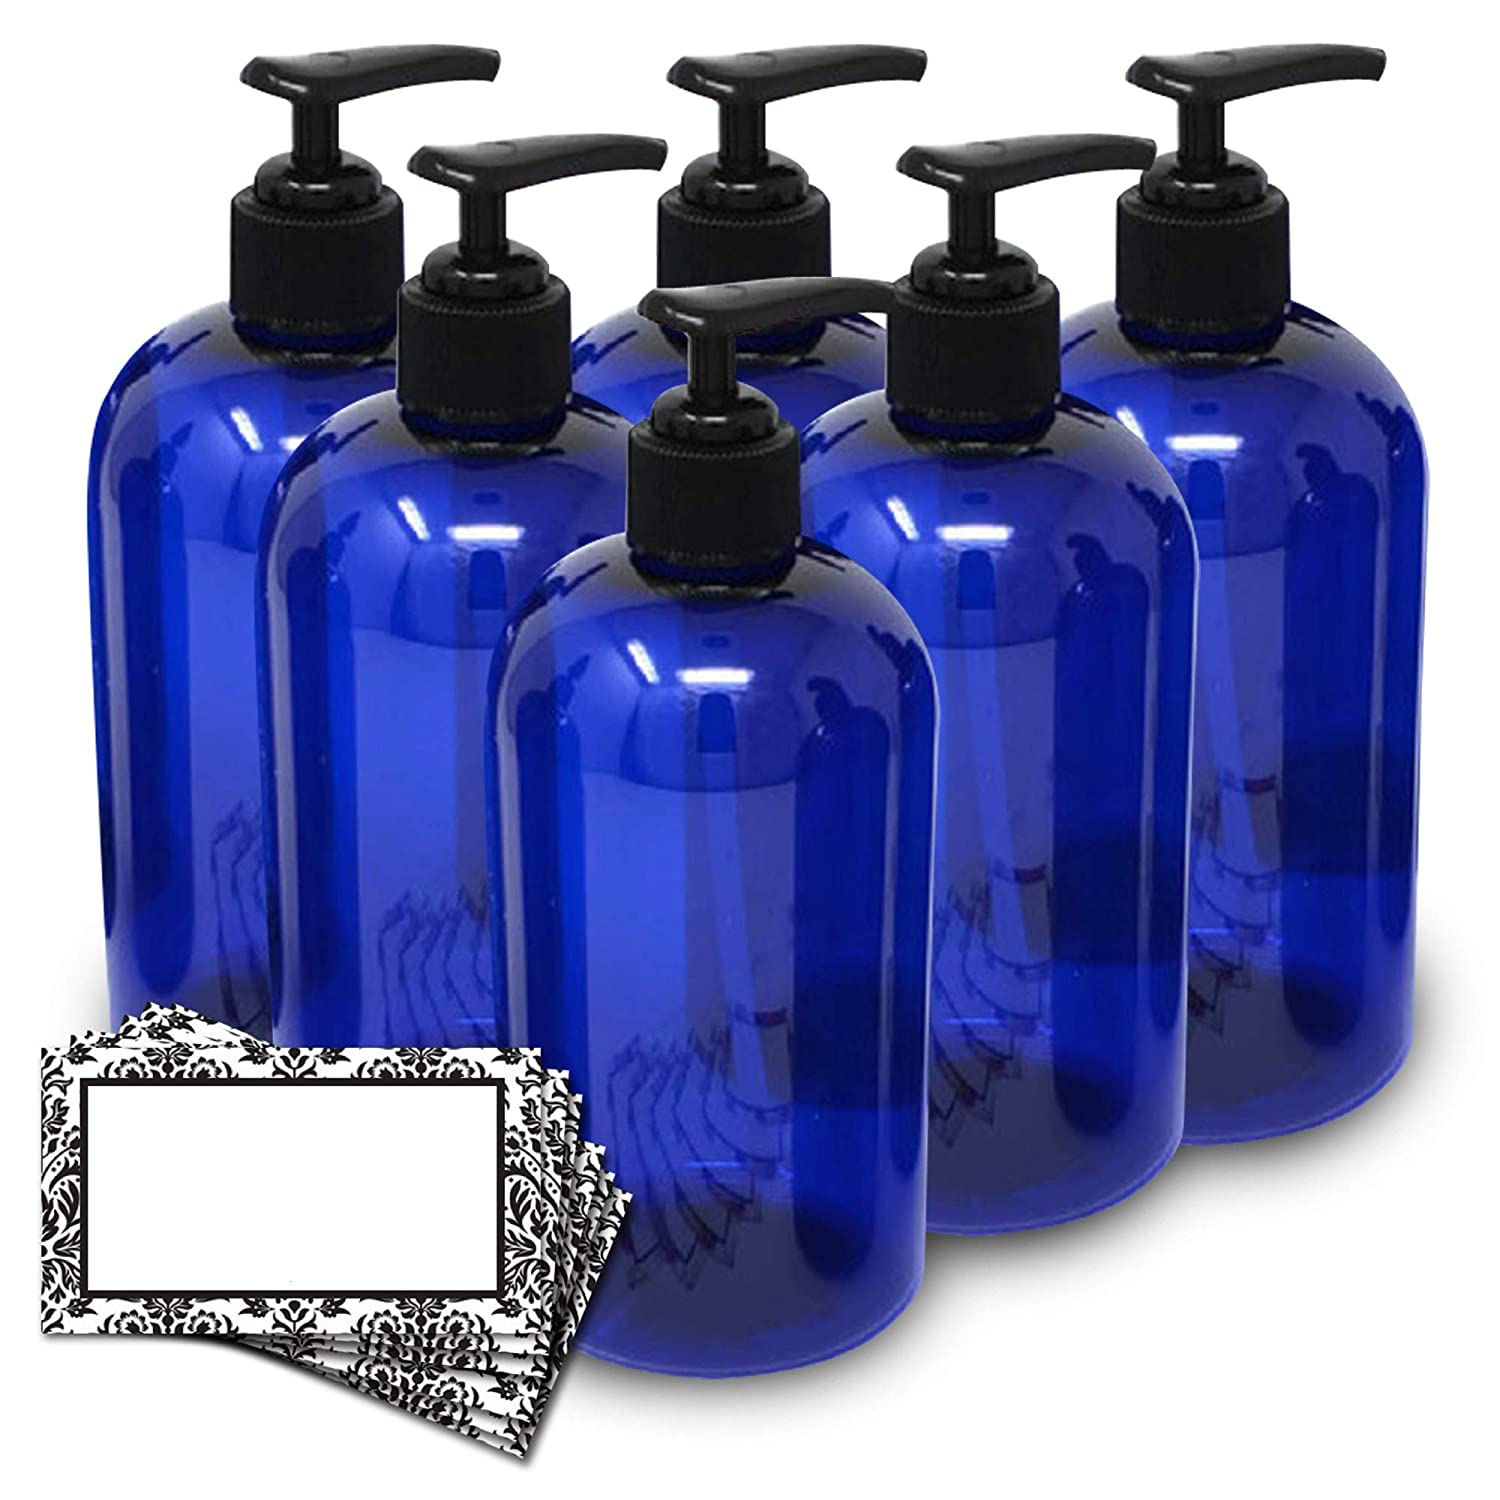 BAIRE BOTTLES -16 OZ BLUE PLASTIC REFILLABLE BOTTLES with BLACK LOTION PUMPS – ORGANIZE Soap, Shampoo, Lotion with Clean Look, PET, Lightweight, BPA Free, 6 Pack, BONUS 6 DAMASK LABELS